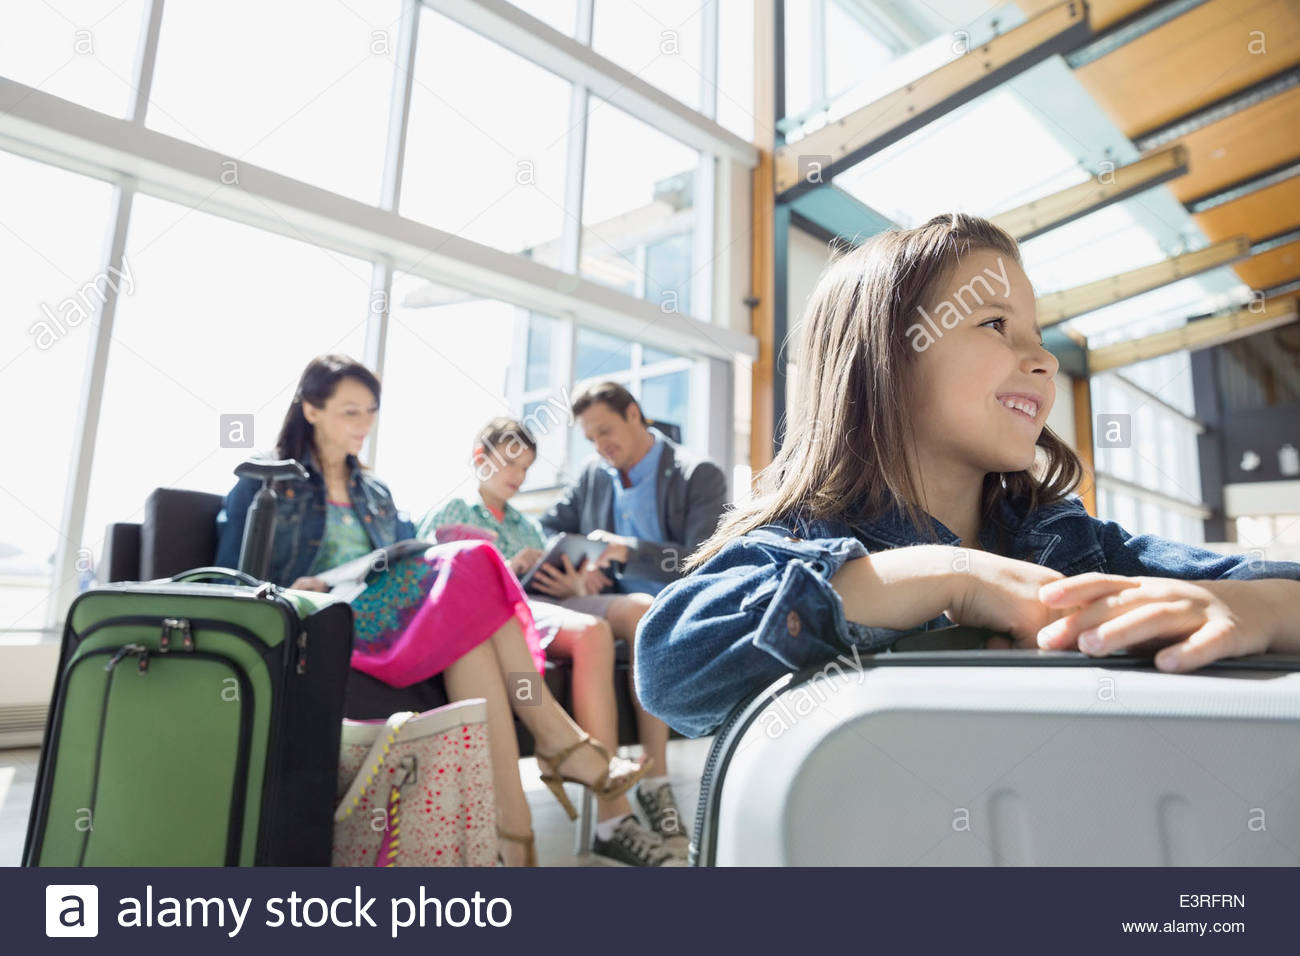 Family waiting in airport - Stock Image